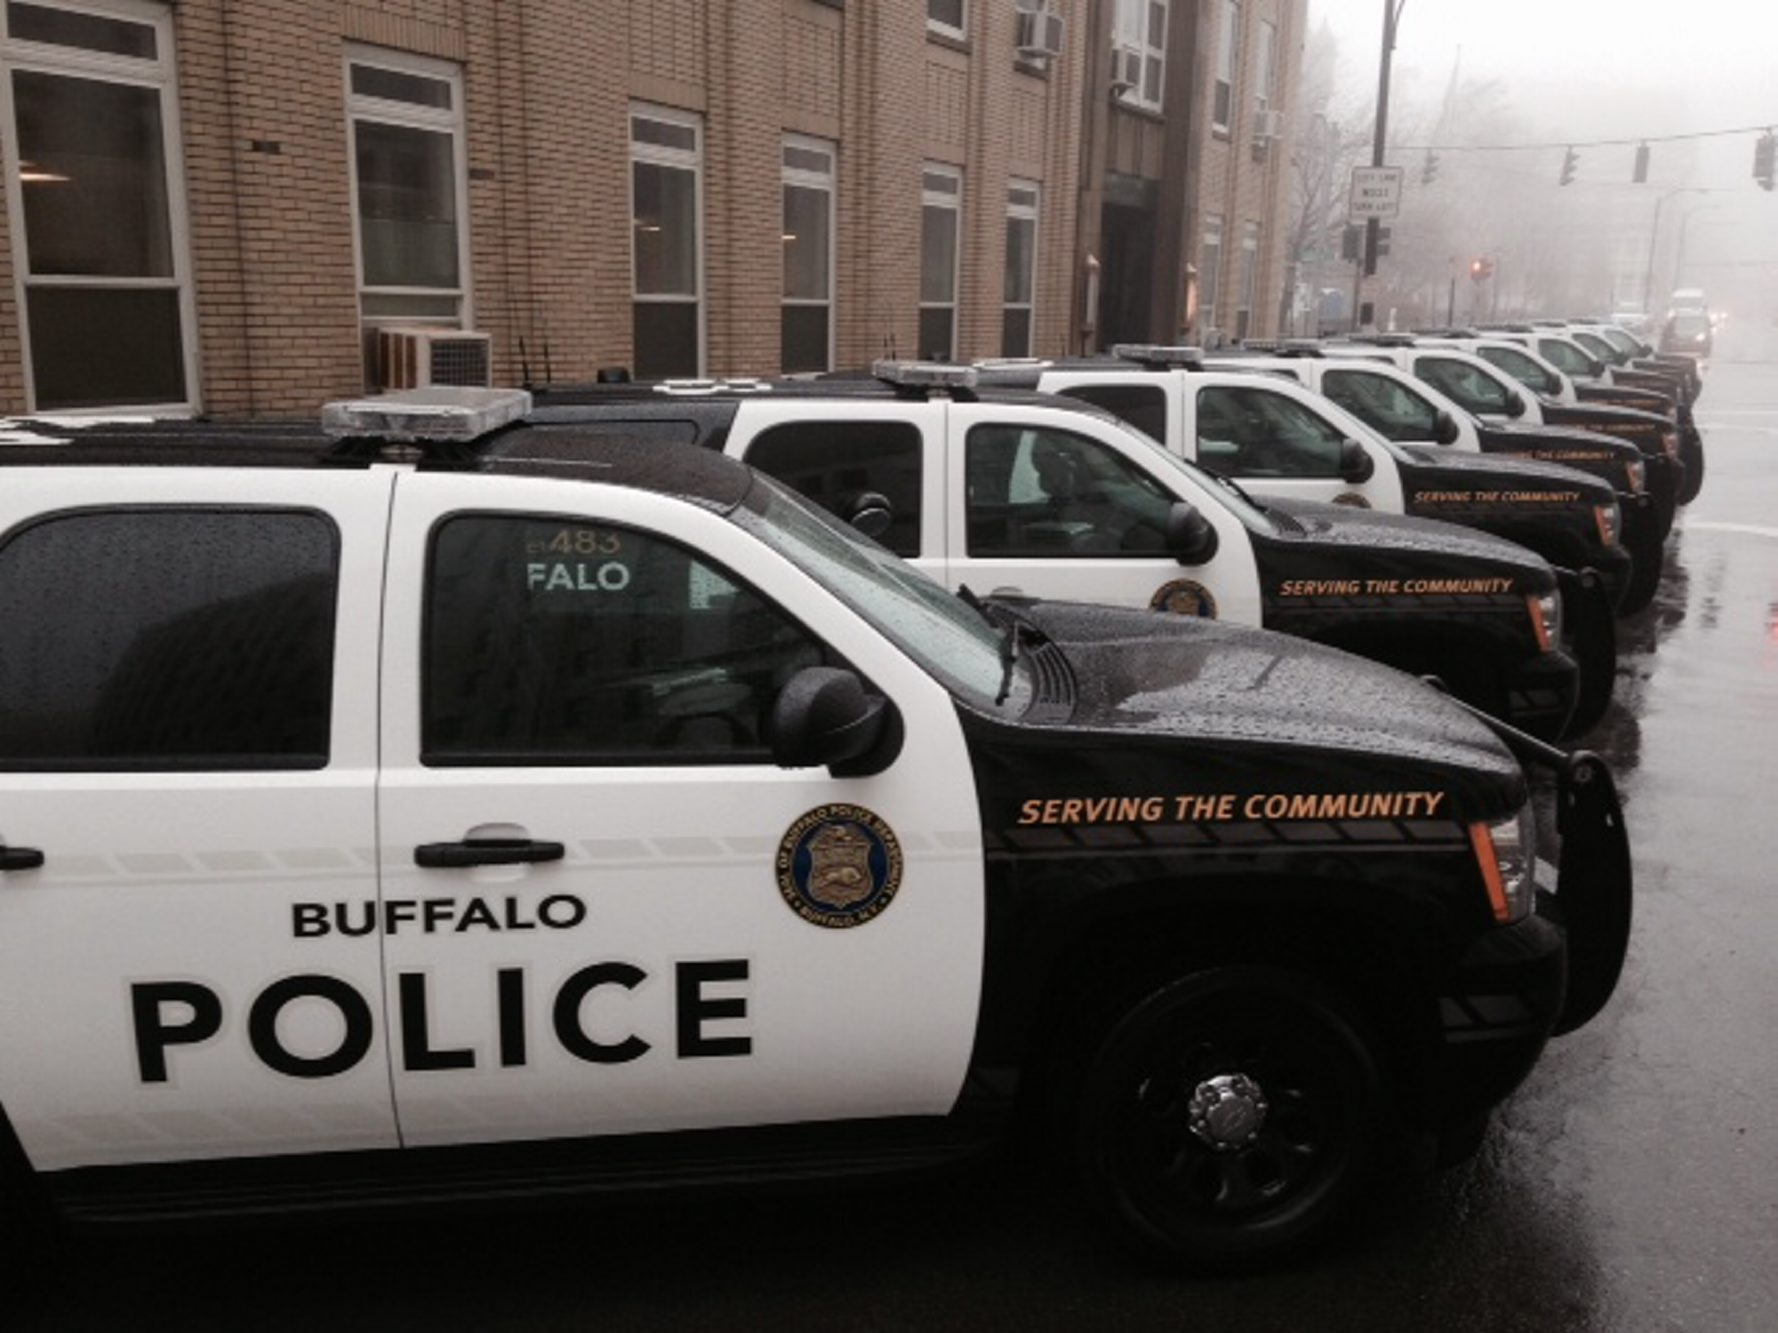 New Chevy Tahoe cruisers lined up outside Buffalo Police headquarters.